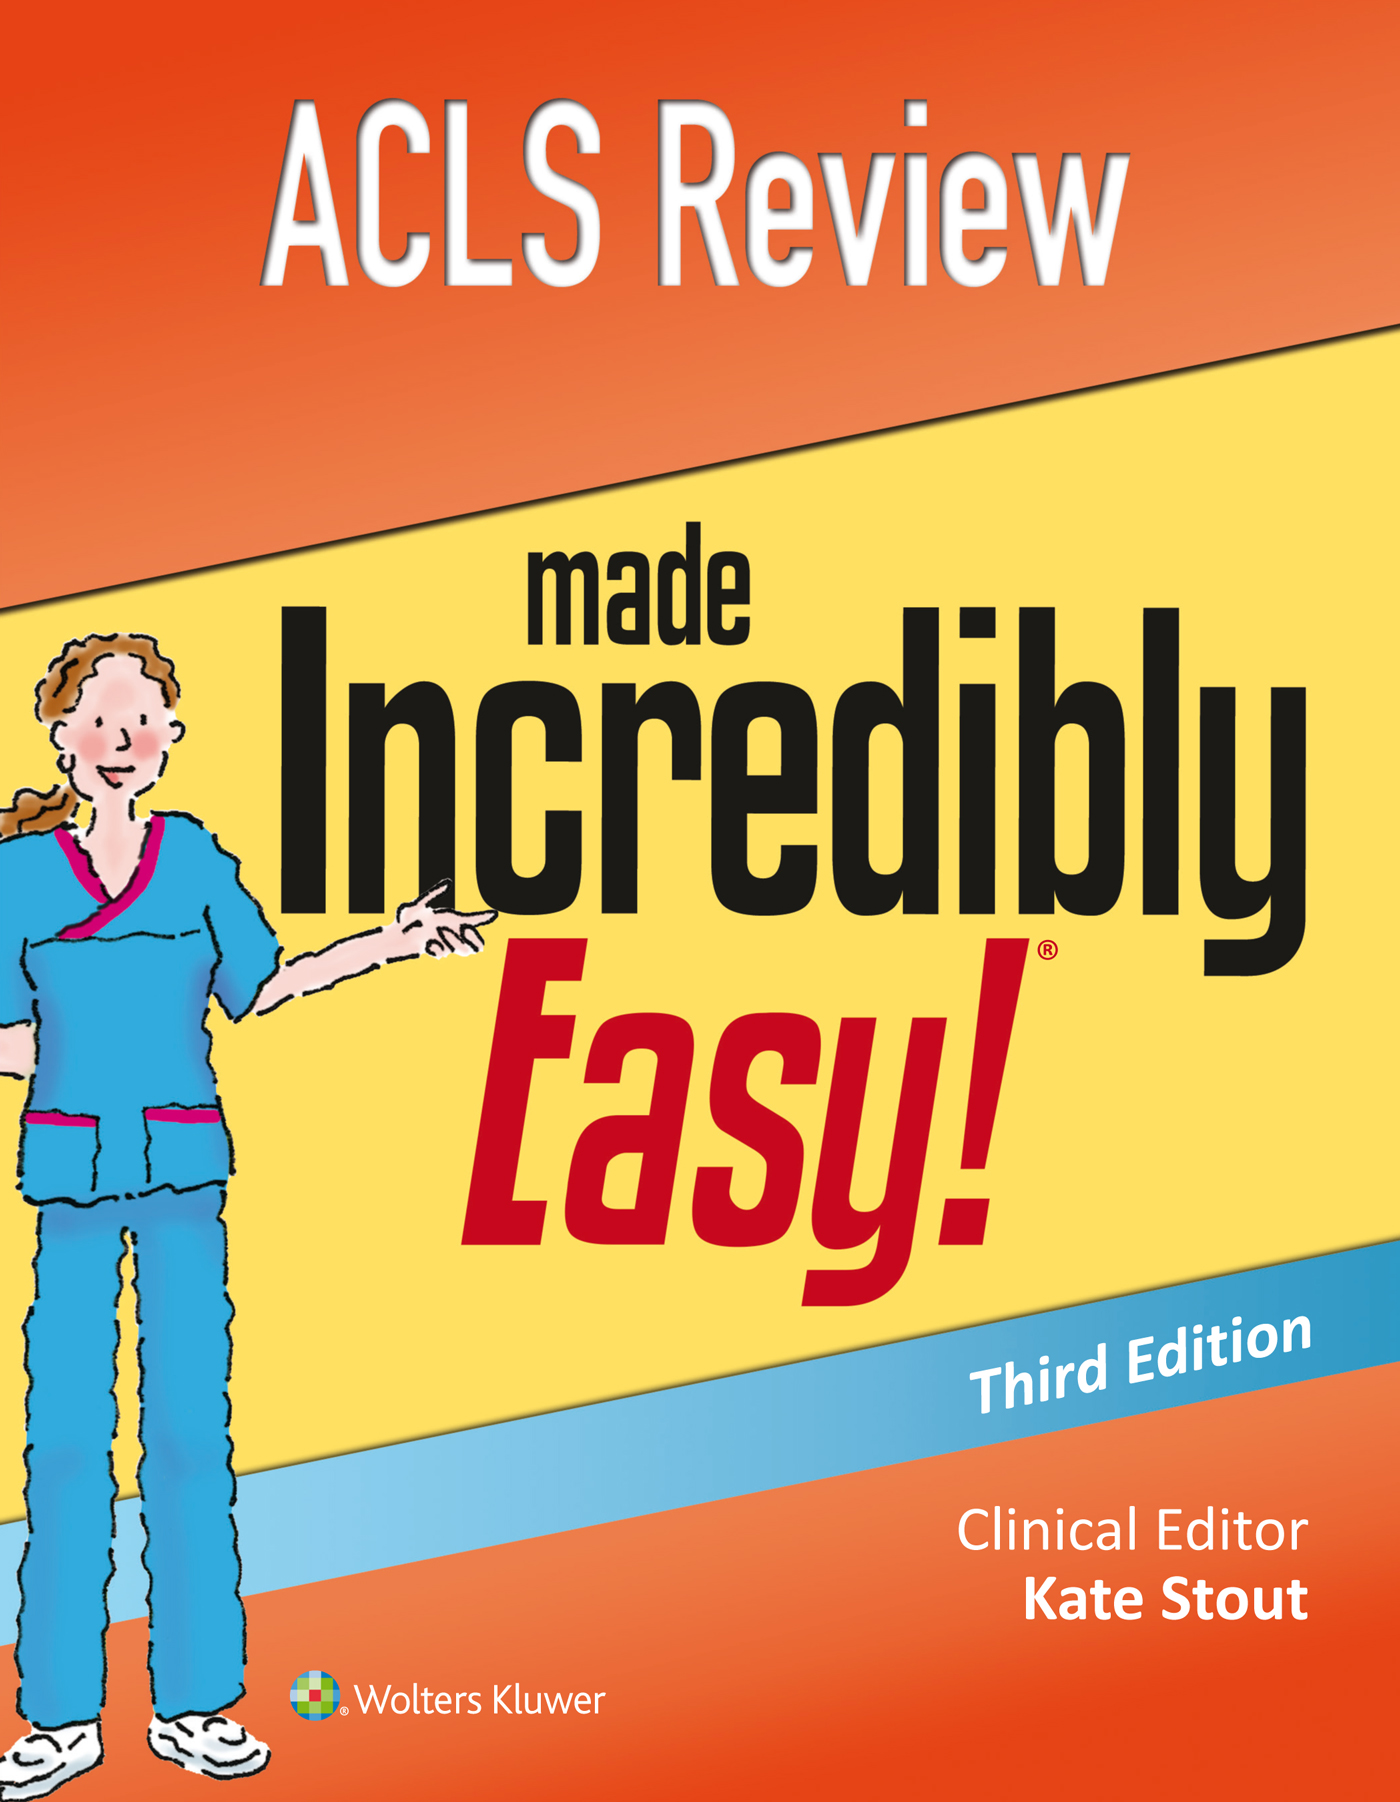 Beste Anatomy And Physiology Made Incredibly Easy Ebook Ideen ...